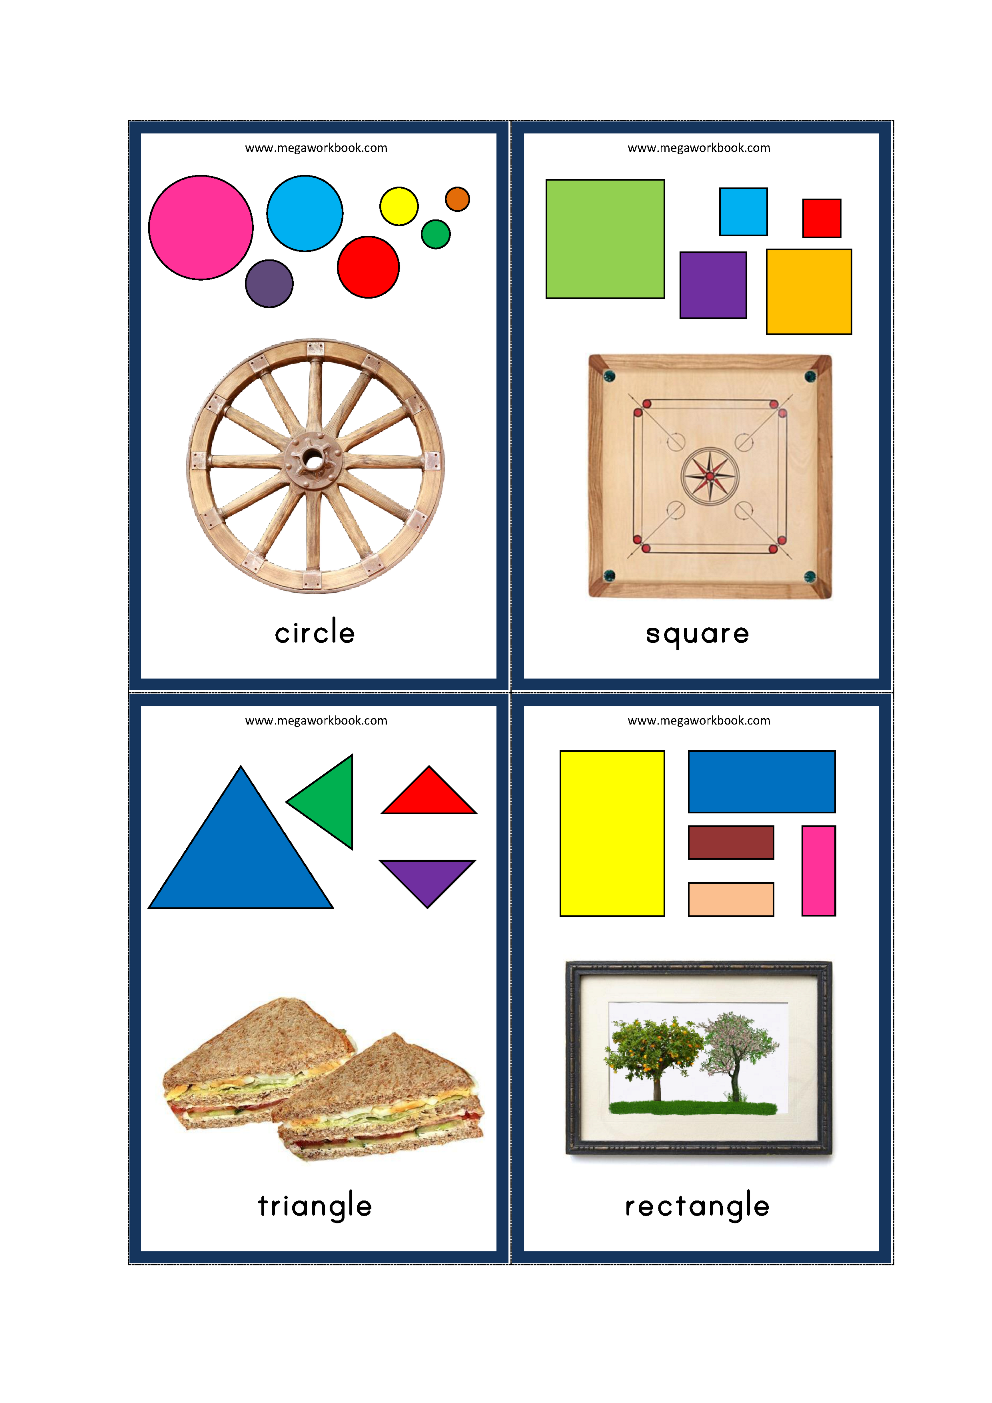 image about Free Printable Shape Flashcards referred to as Designs Flashcards - Cost-free Printable Designs Flash Playing cards For